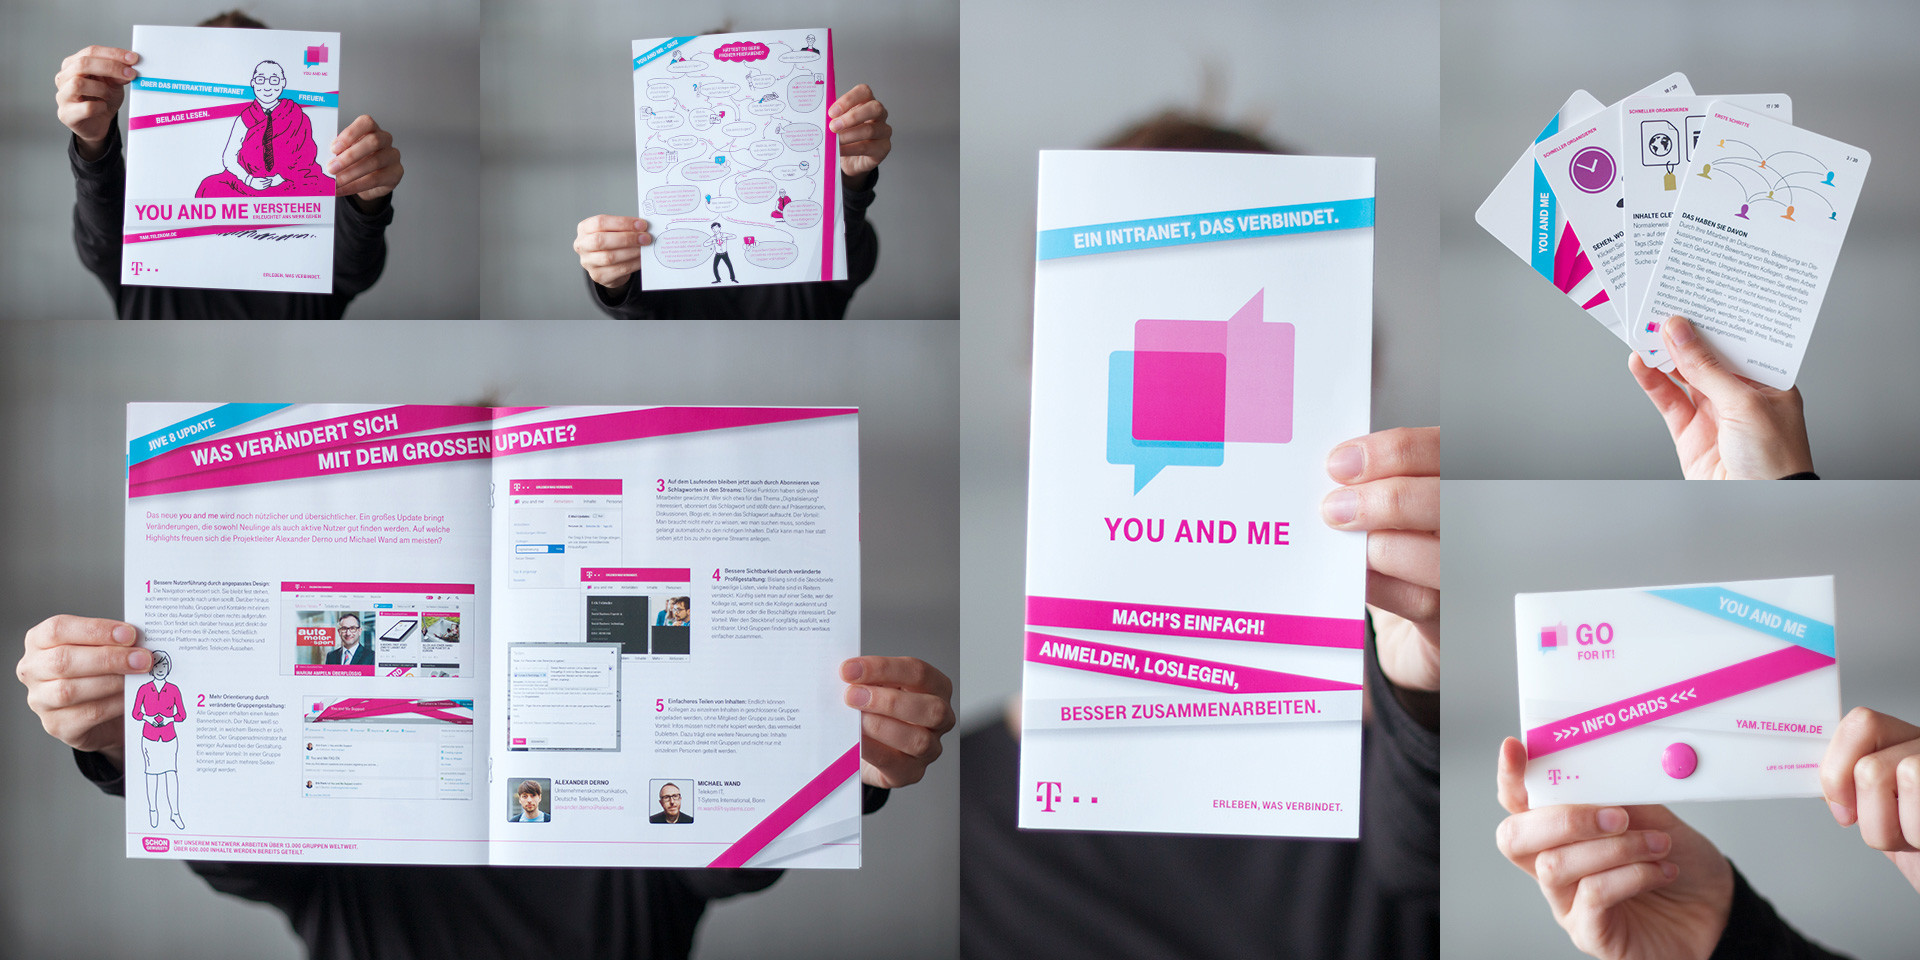 Deutsche Telekom – You And Me – Communication material